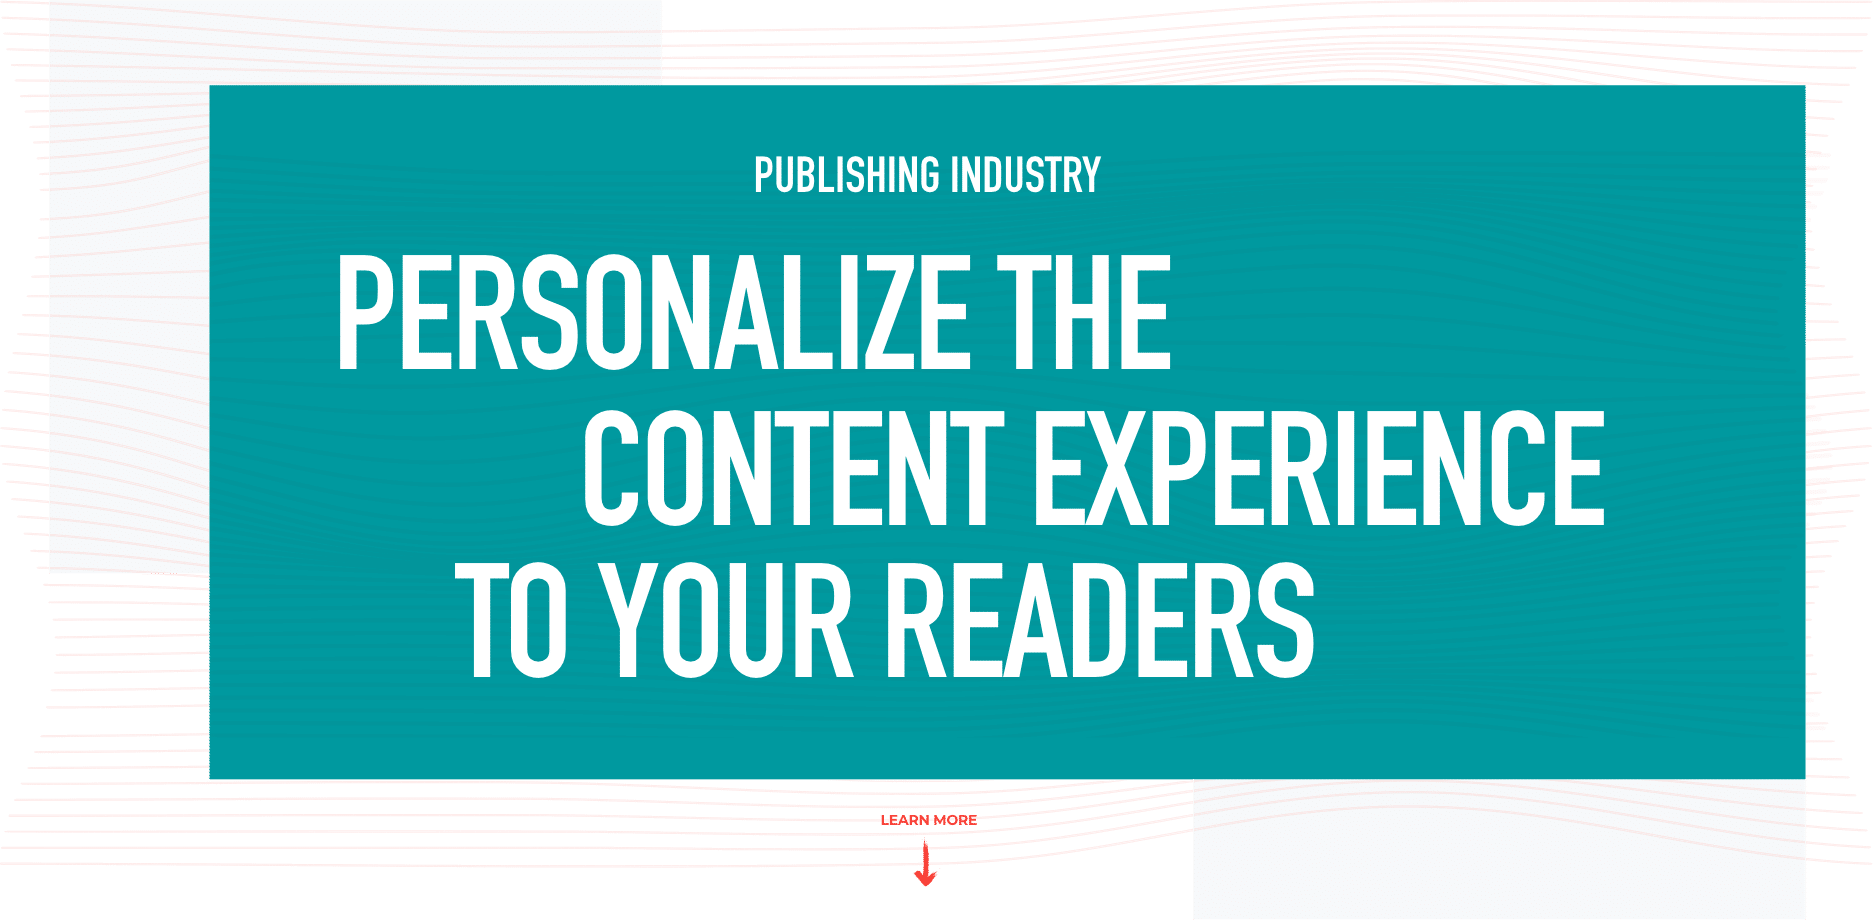 Personalize the content experience to your readers